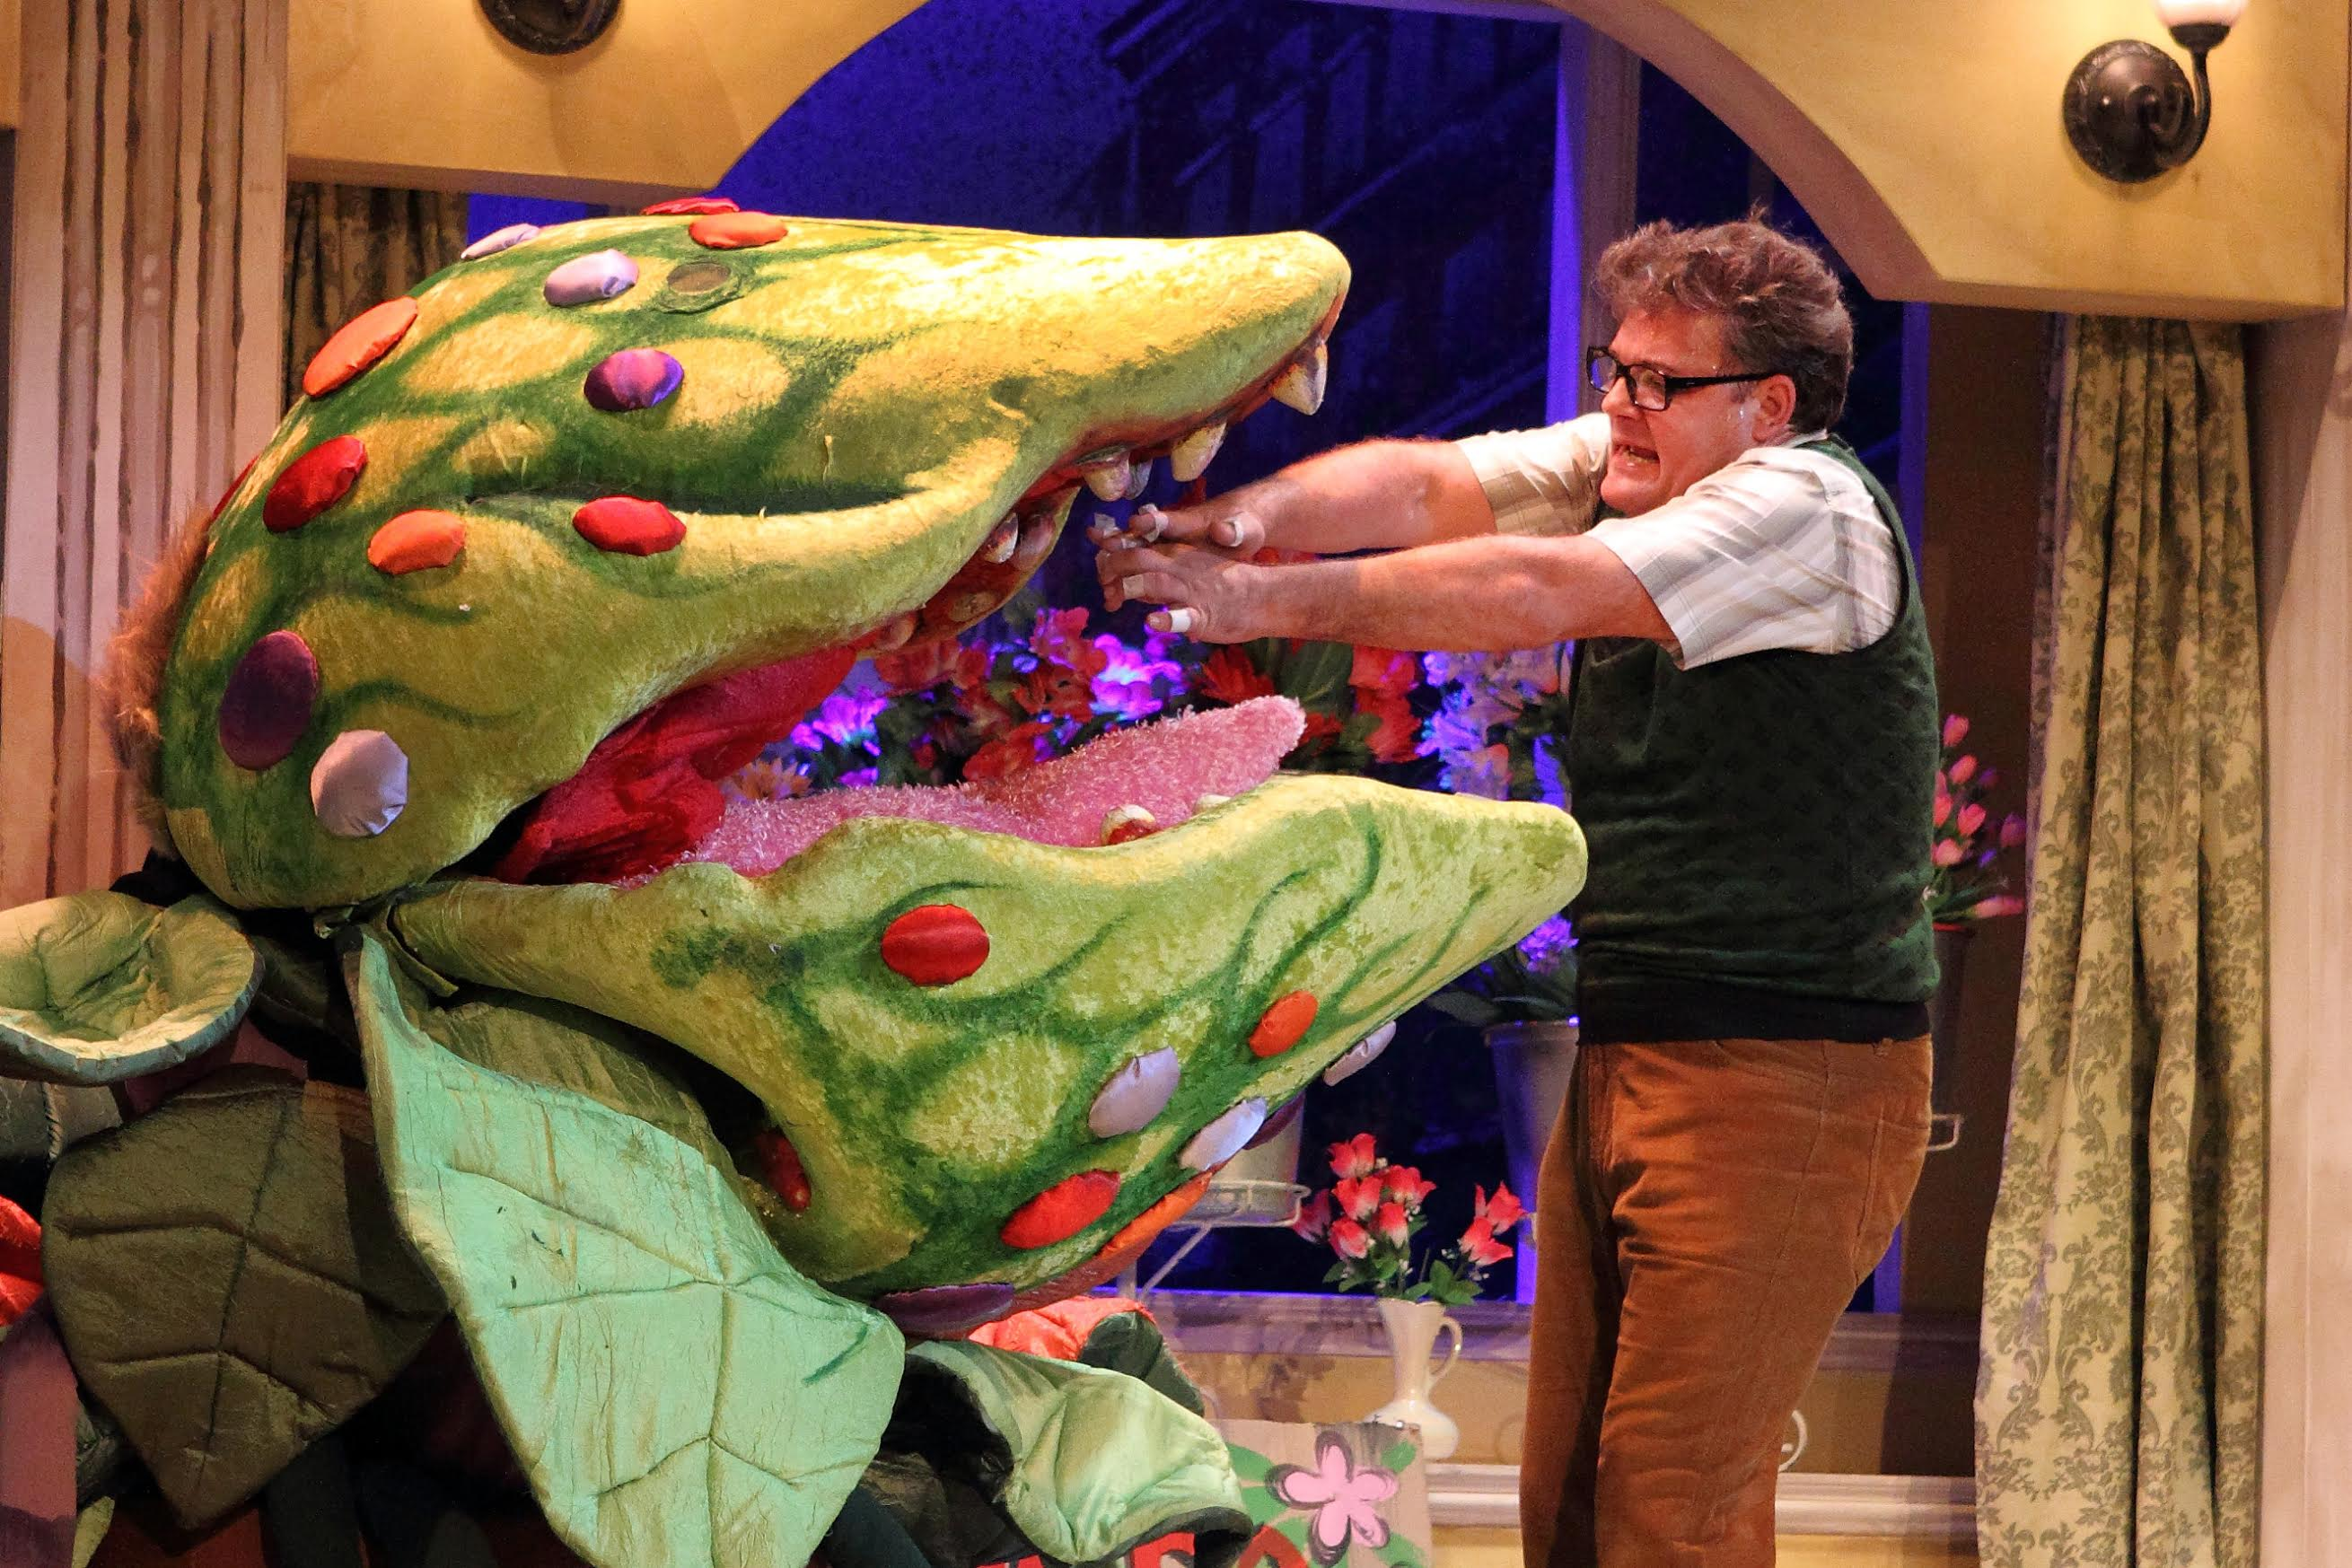 Seymour (Alan Committie) feeds his bloodthirsty creation, Audrey II.